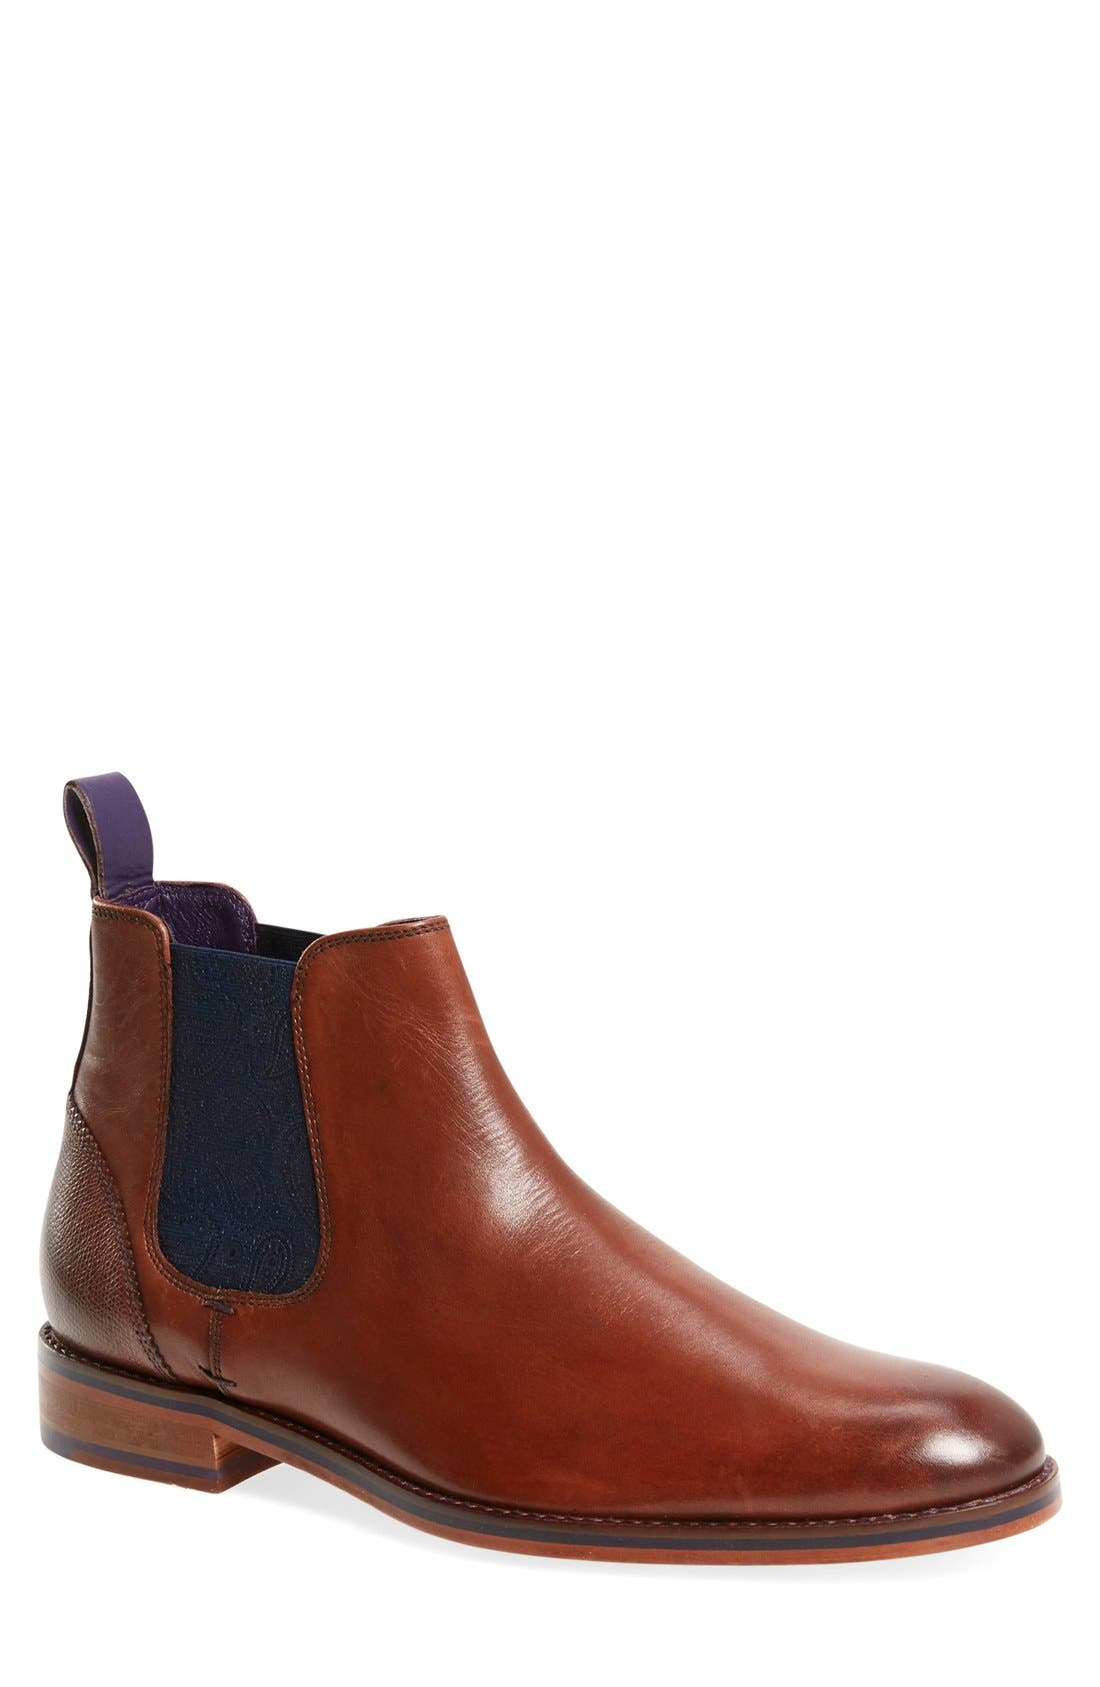 Alternate Image 1 Selected - Ted Baker London 'Camroon 4' Chelsea Boot (Men)